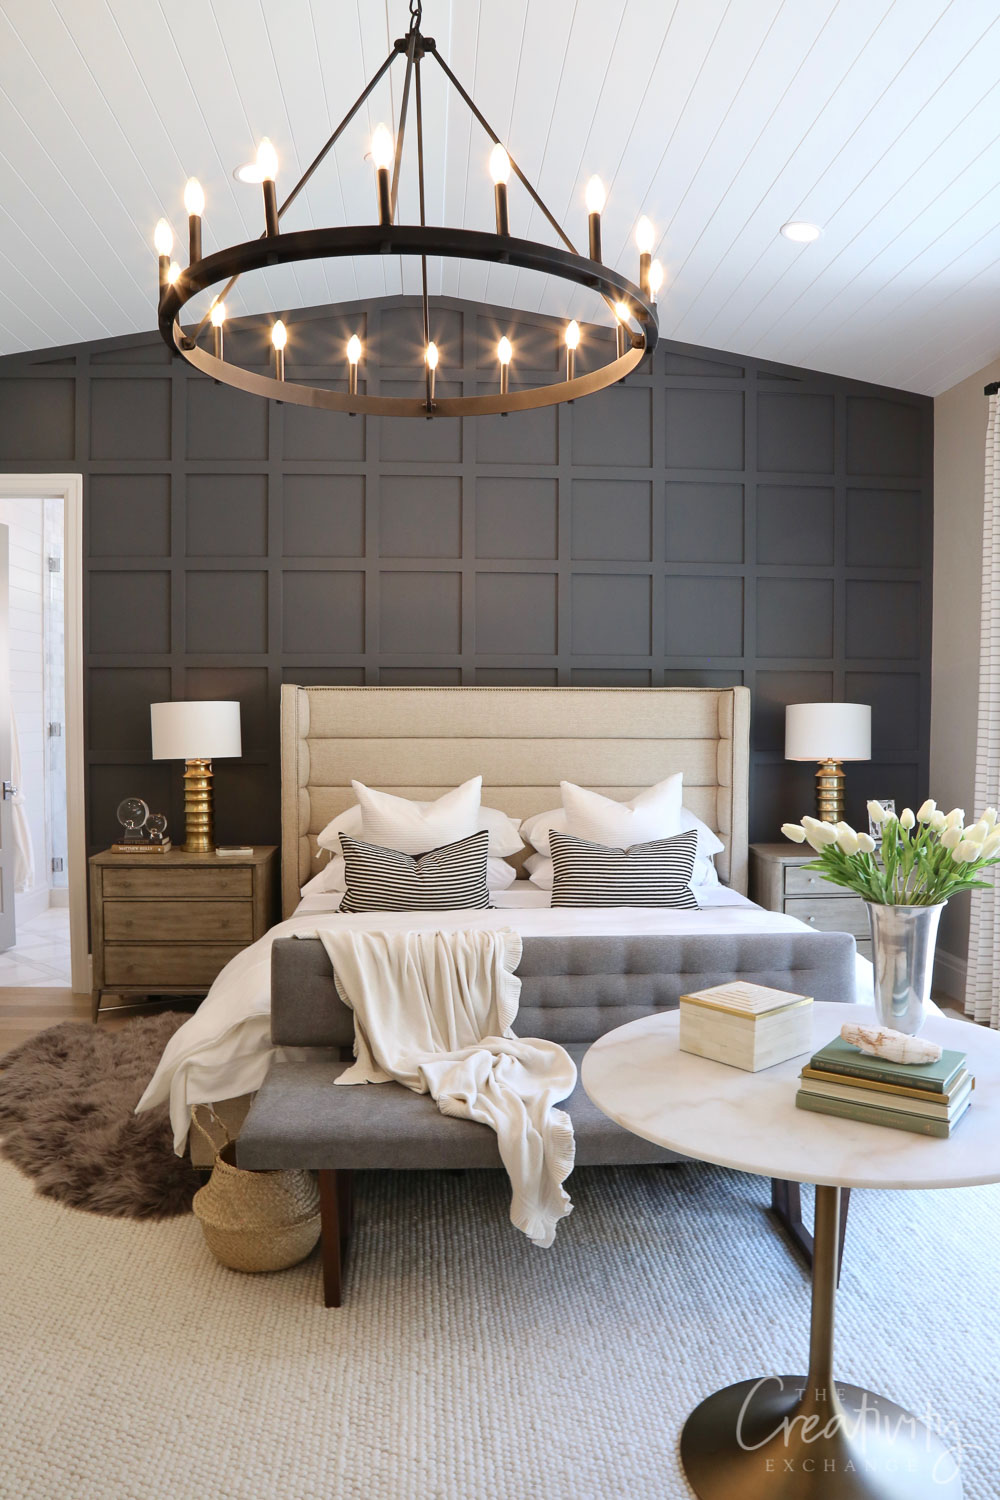 Utah Valley Parade Of Homes 2019 Master Bedrooms Decor Bedroom Makeover Home